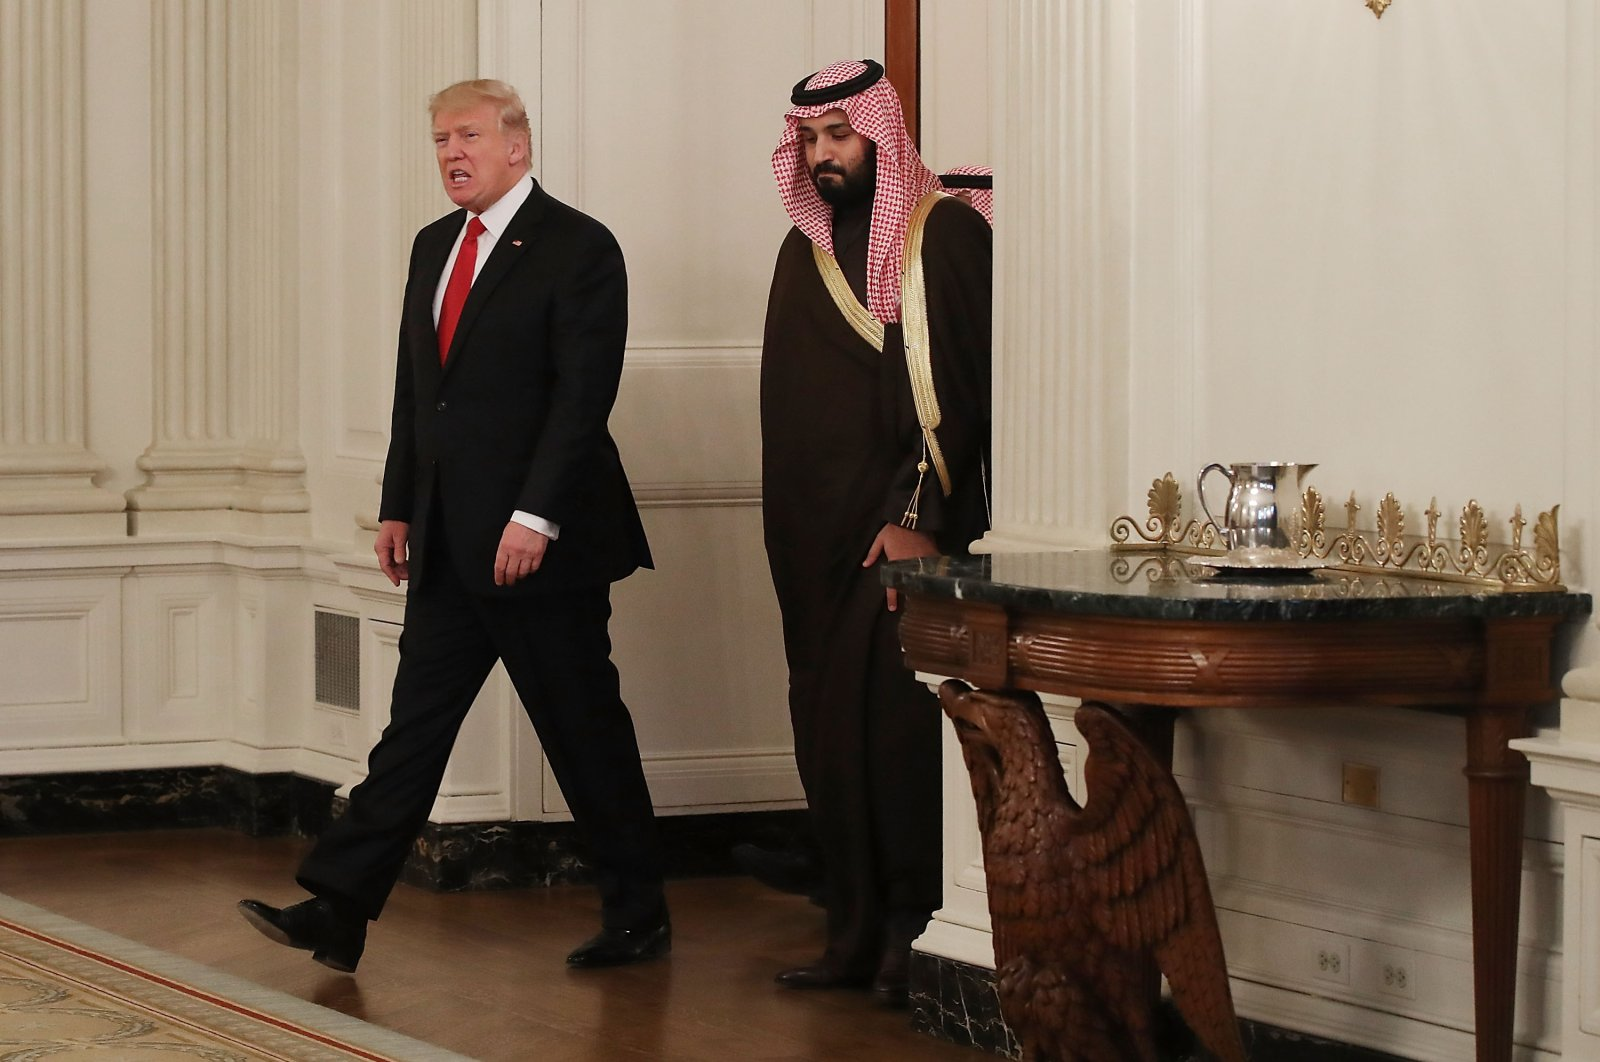 Then-U.S. President Donald Trump (L) and Saudi Crown Prince Mohammed bin Salman walk at the White House, Washington, D.C., U.S., March 14, 2017. (Photo by Getty Images)